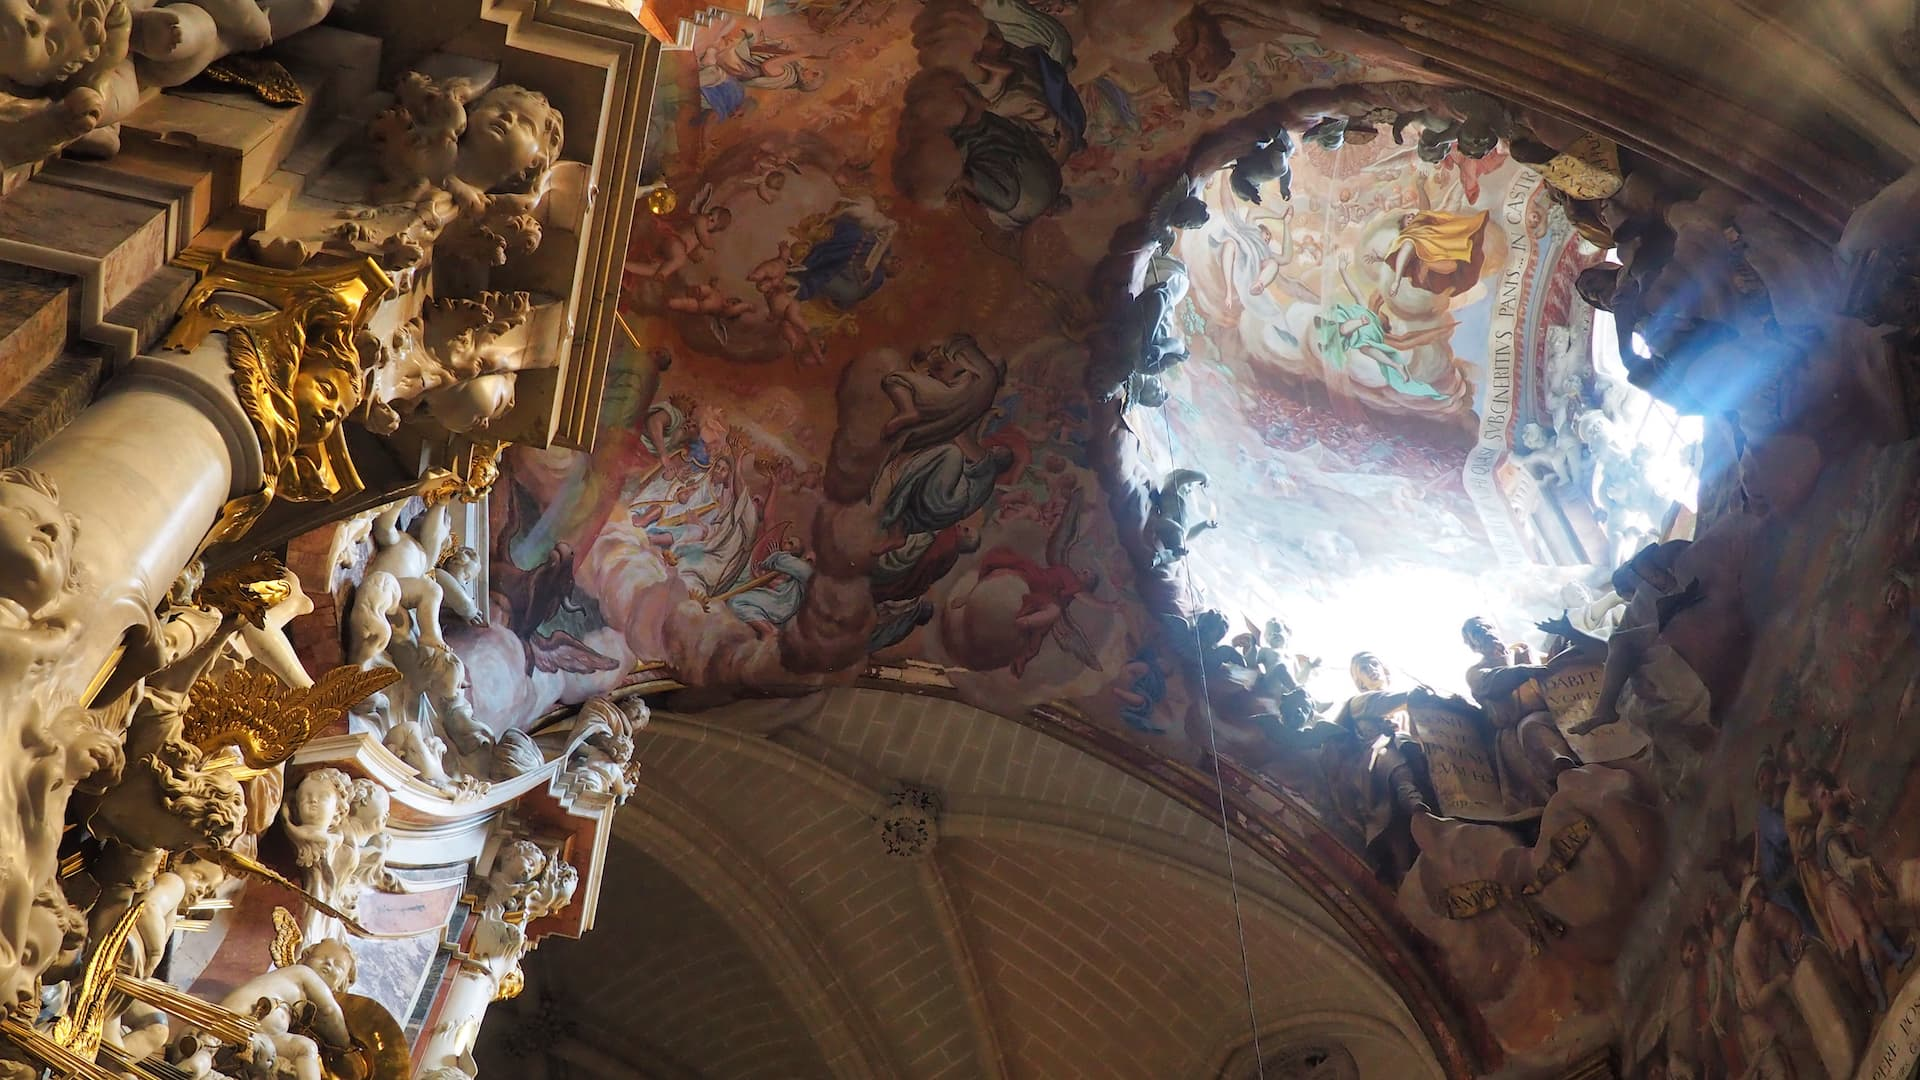 A ceiling fresco painting is illuminated by light shining through a dome above